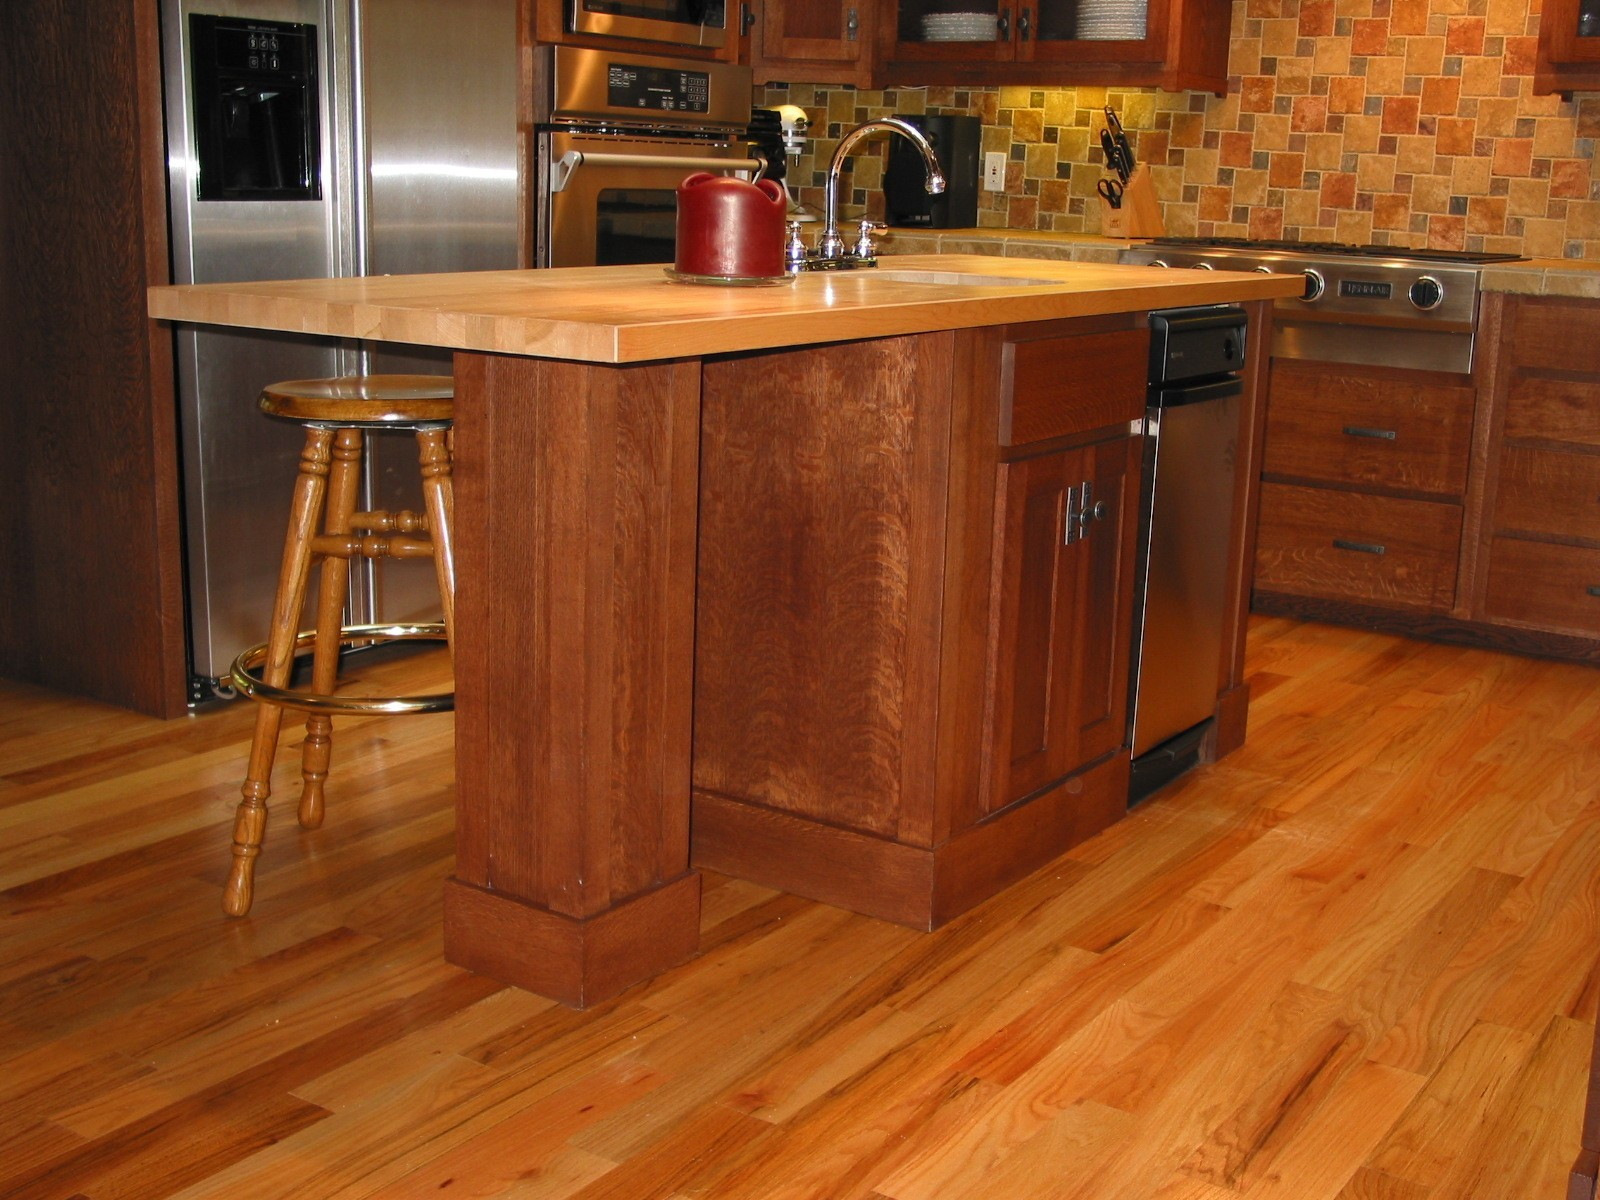 Quarter sawn oak kitchen island